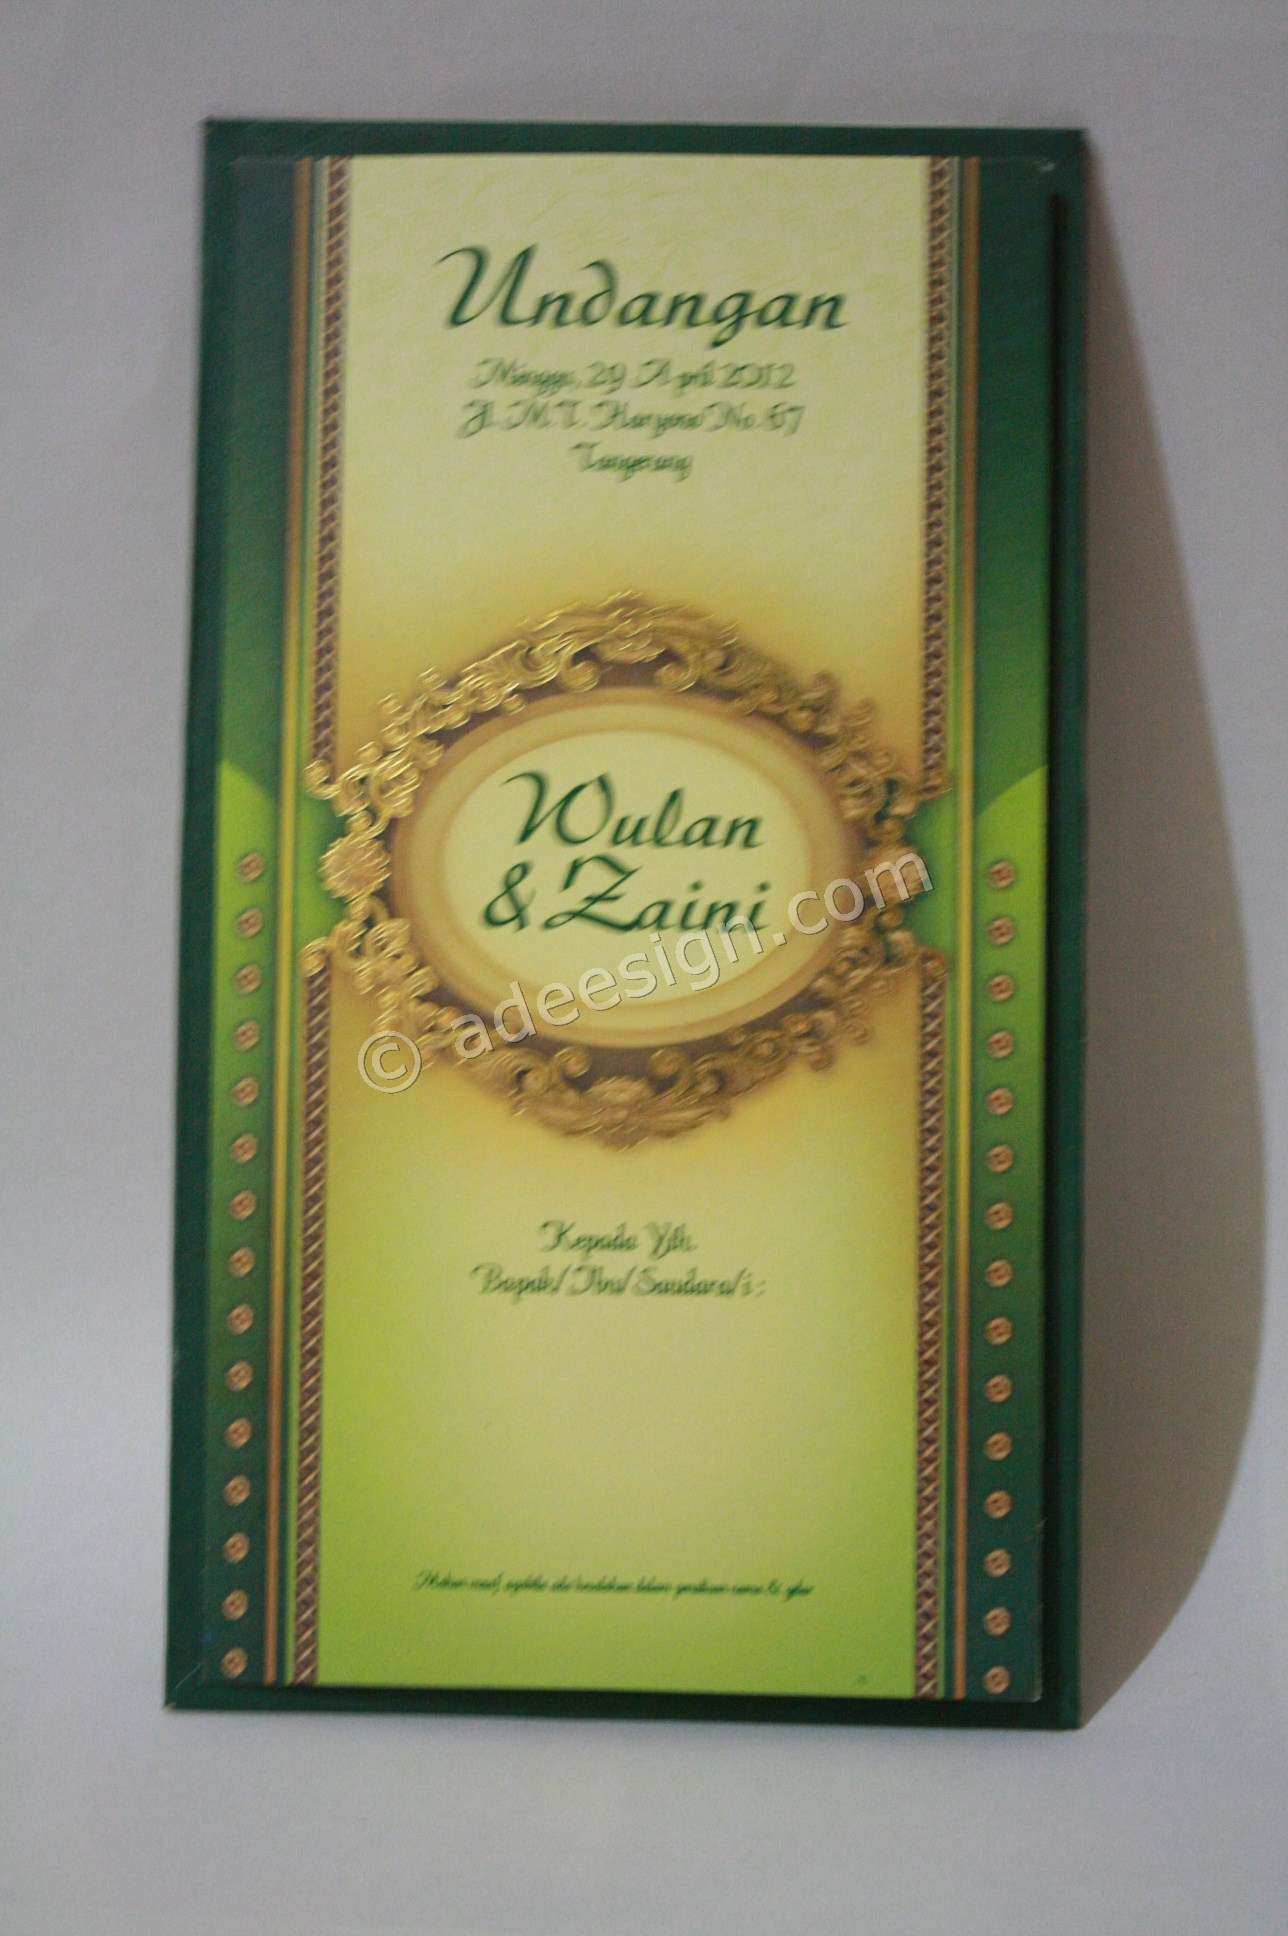 Kartu Undangan Pernikahan Semi Hard Cover Wulan dan Zaini 1 - Membuat Wedding Invitations Simple dan Elegan di Tambak Sarioso